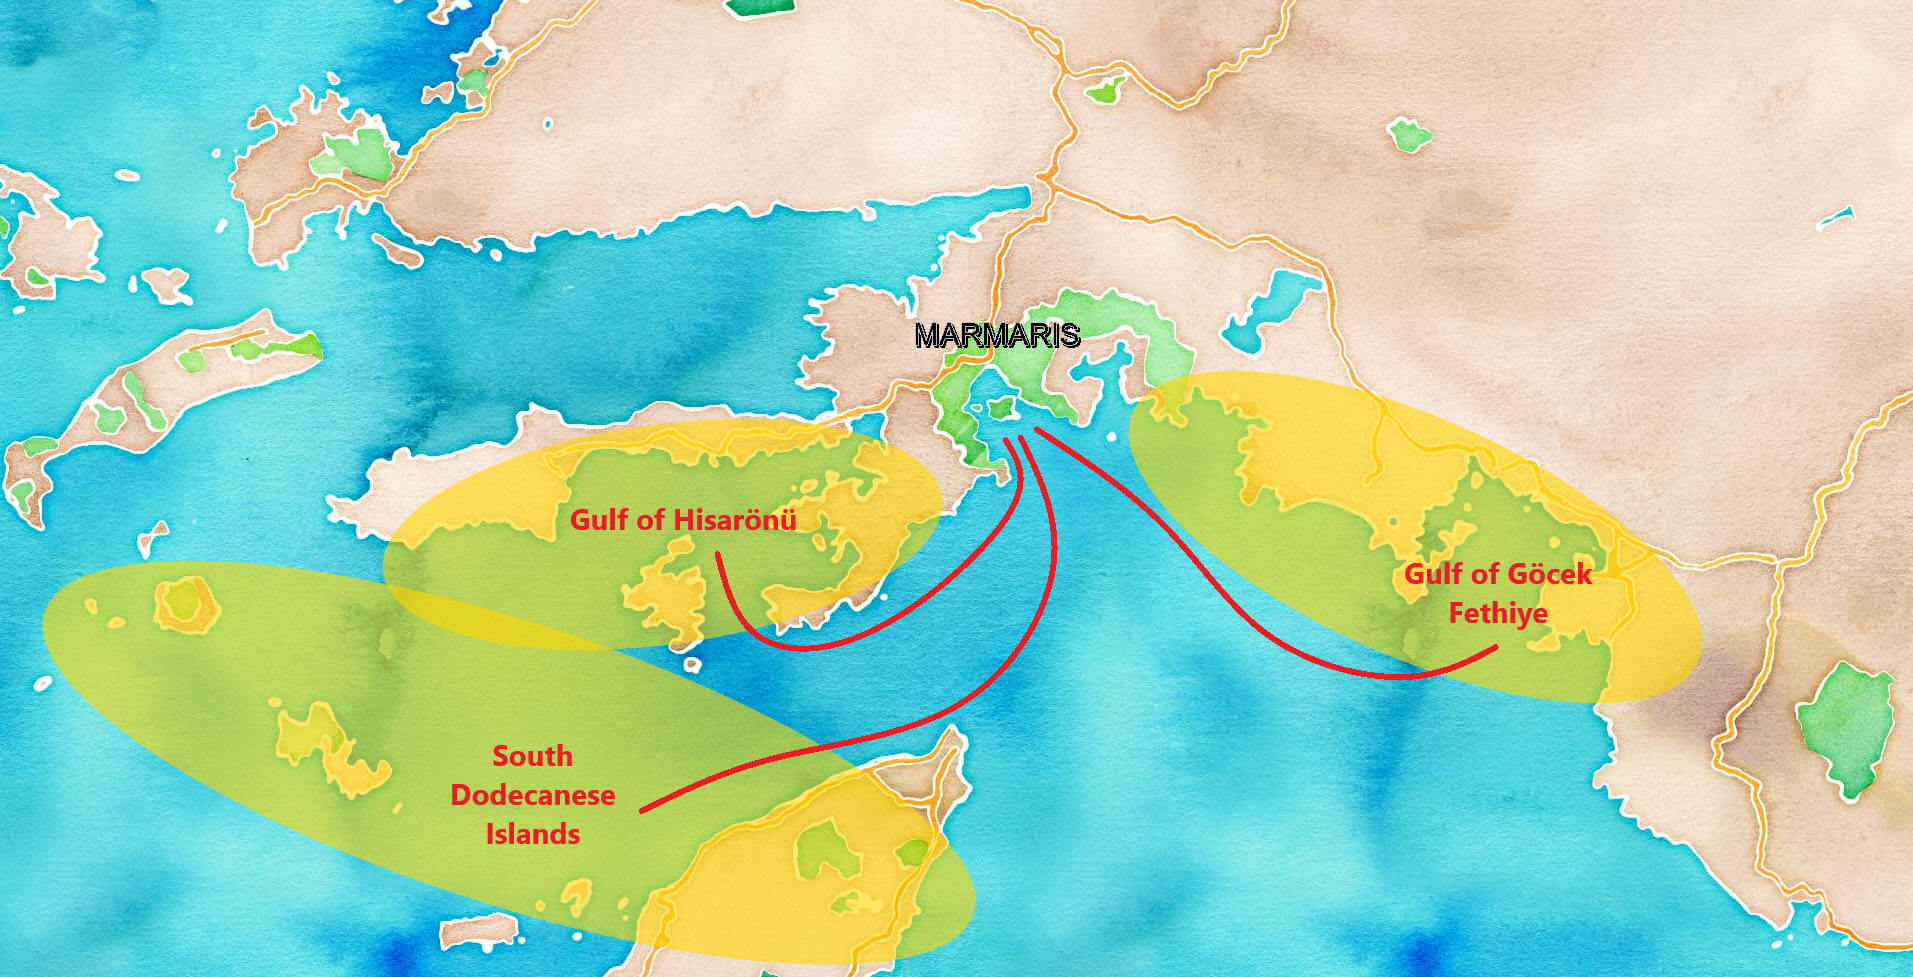 Routes from Marmaris